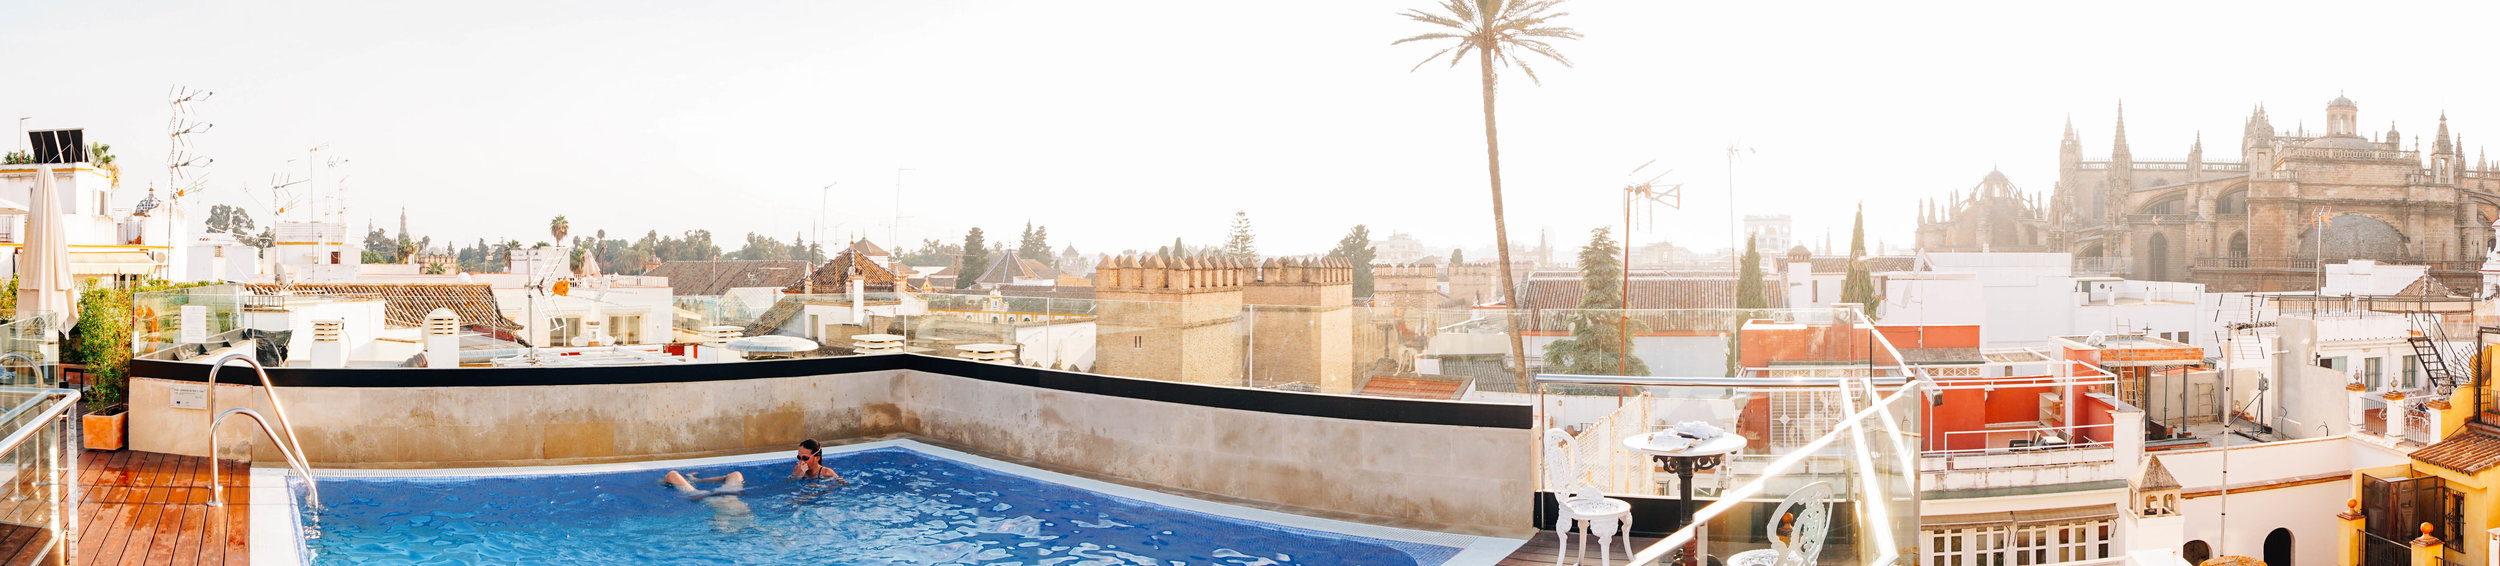 Hotel Casa 1800. Panoramic Rooftops in Seville Spain.